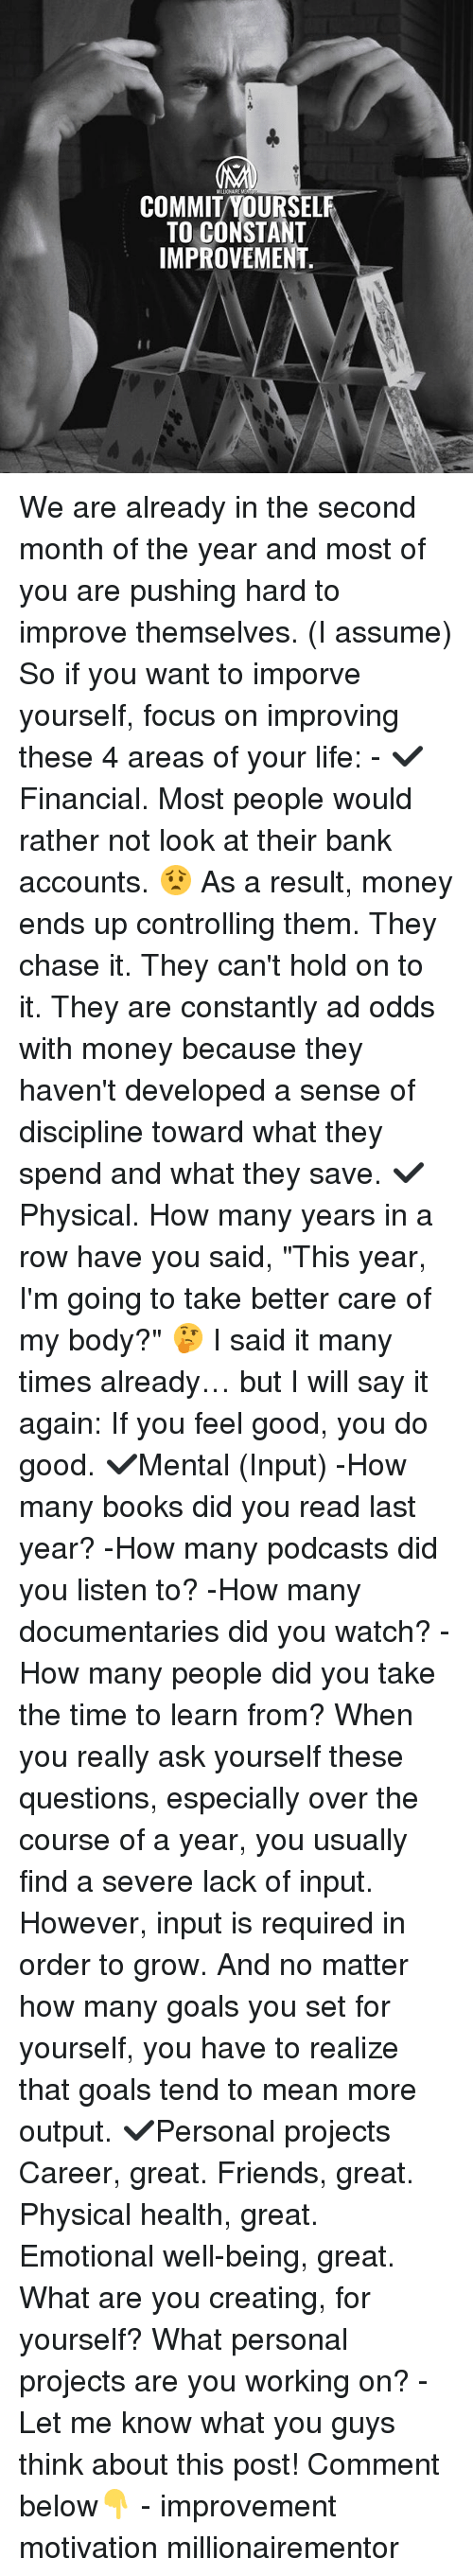 "Books, Friends, and Goals: COMMIT YOURSELF  TO CONSTANT  IMPROVEMENT. We are already in the second month of the year and most of you are pushing hard to improve themselves. (I assume) So if you want to imporve yourself, focus on improving these 4 areas of your life: - ✔️Financial. Most people would rather not look at their bank accounts. 😟 As a result, money ends up controlling them. They chase it. They can't hold on to it. They are constantly ad odds with money because they haven't developed a sense of discipline toward what they spend and what they save. ✔️Physical. How many years in a row have you said, ""This year, I'm going to take better care of my body?"" 🤔 I said it many times already… but I will say it again: If you feel good, you do good. ✔️Mental (Input) -How many books did you read last year? -How many podcasts did you listen to? -How many documentaries did you watch? -How many people did you take the time to learn from? When you really ask yourself these questions, especially over the course of a year, you usually find a severe lack of input. However, input is required in order to grow. And no matter how many goals you set for yourself, you have to realize that goals tend to mean more output. ✔️Personal projects Career, great. Friends, great. Physical health, great. Emotional well-being, great. What are you creating, for yourself? What personal projects are you working on? - Let me know what you guys think about this post! Comment below👇 - improvement motivation millionairementor"